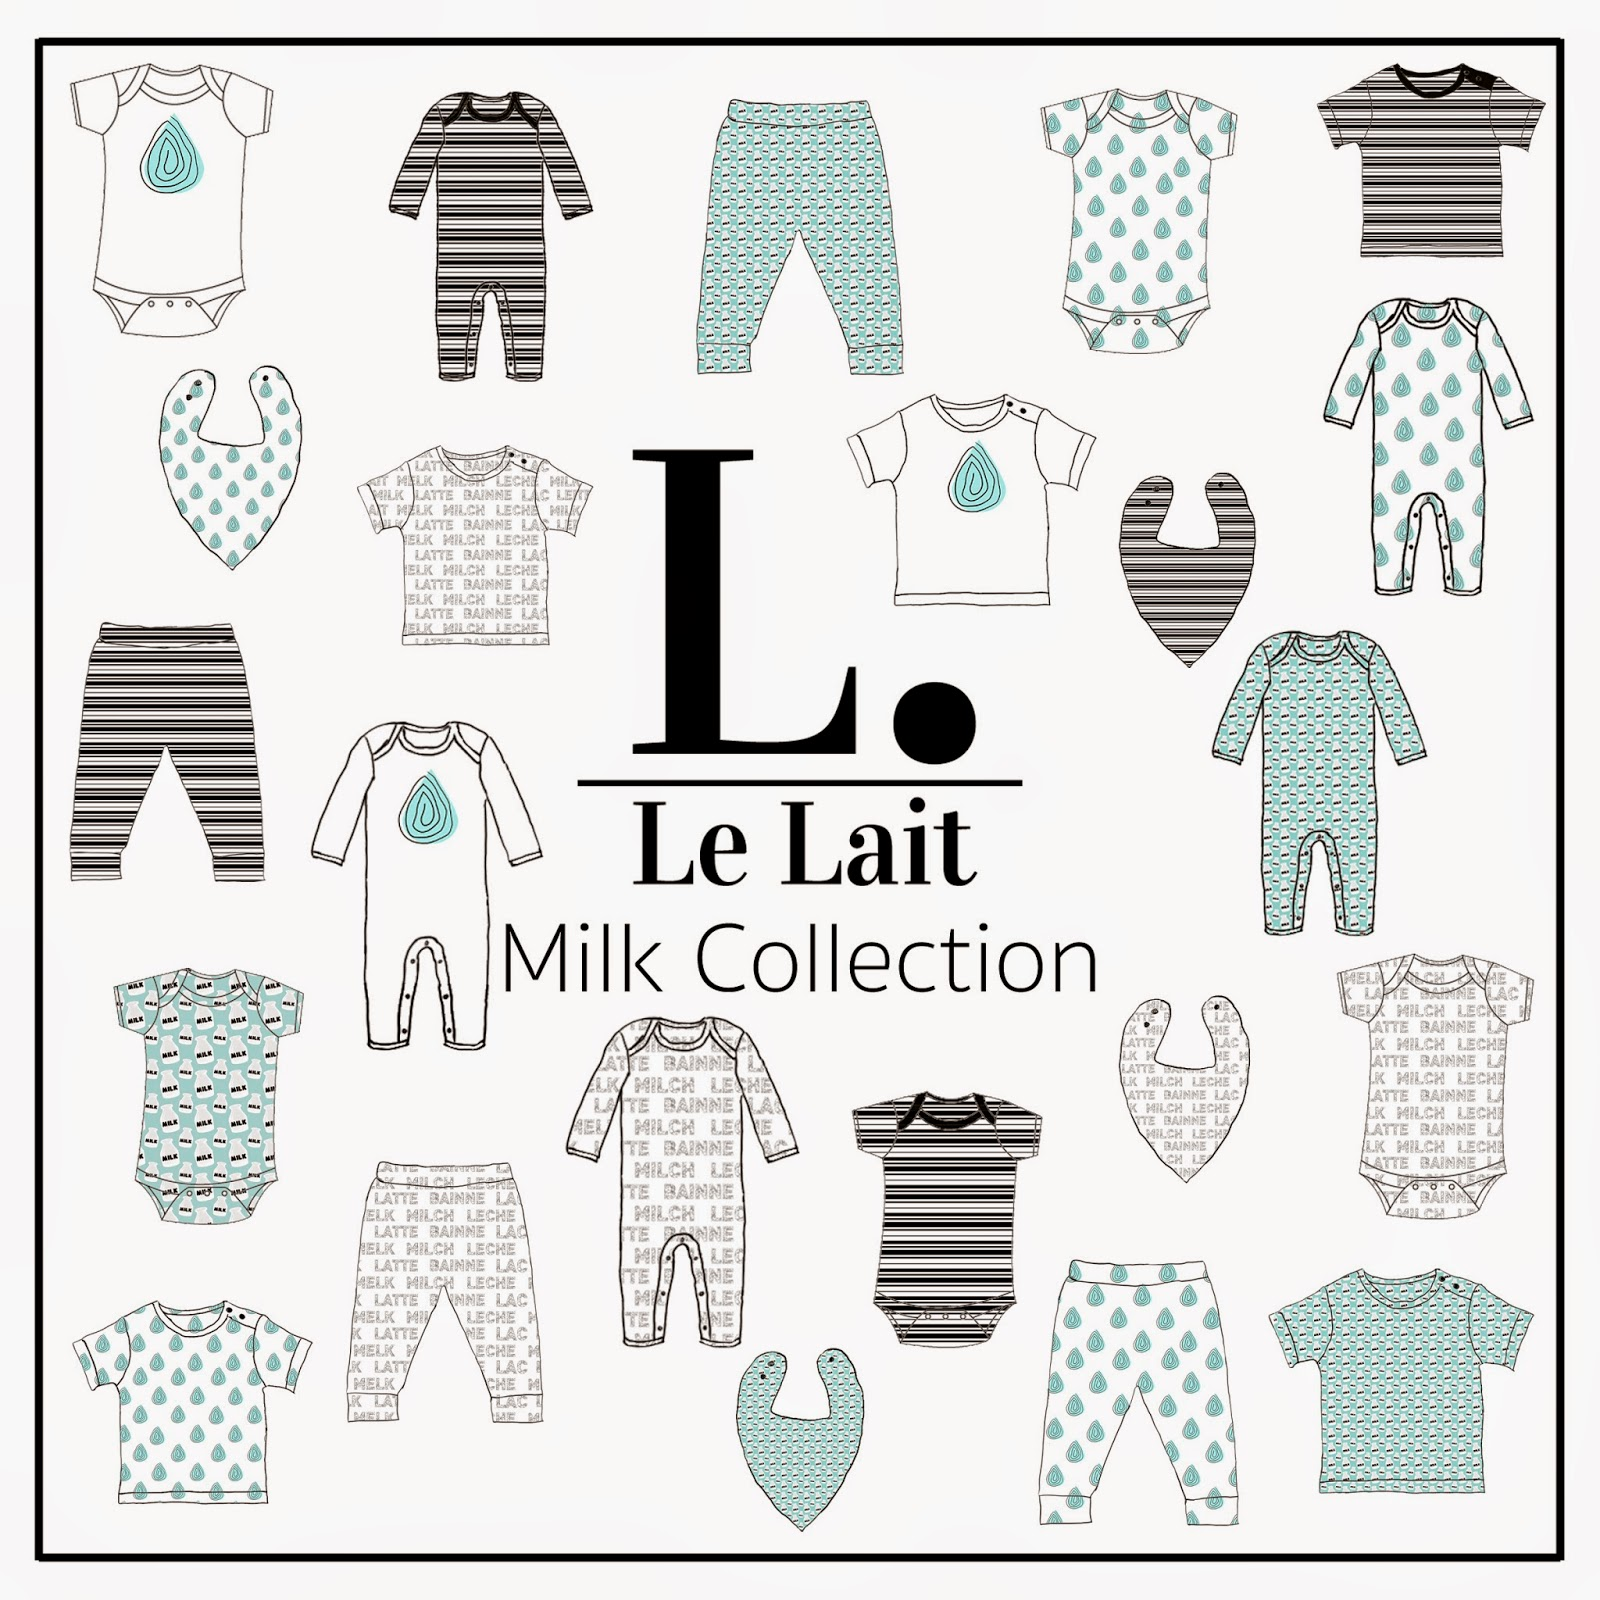 Le Lait's Milk Collection SS15